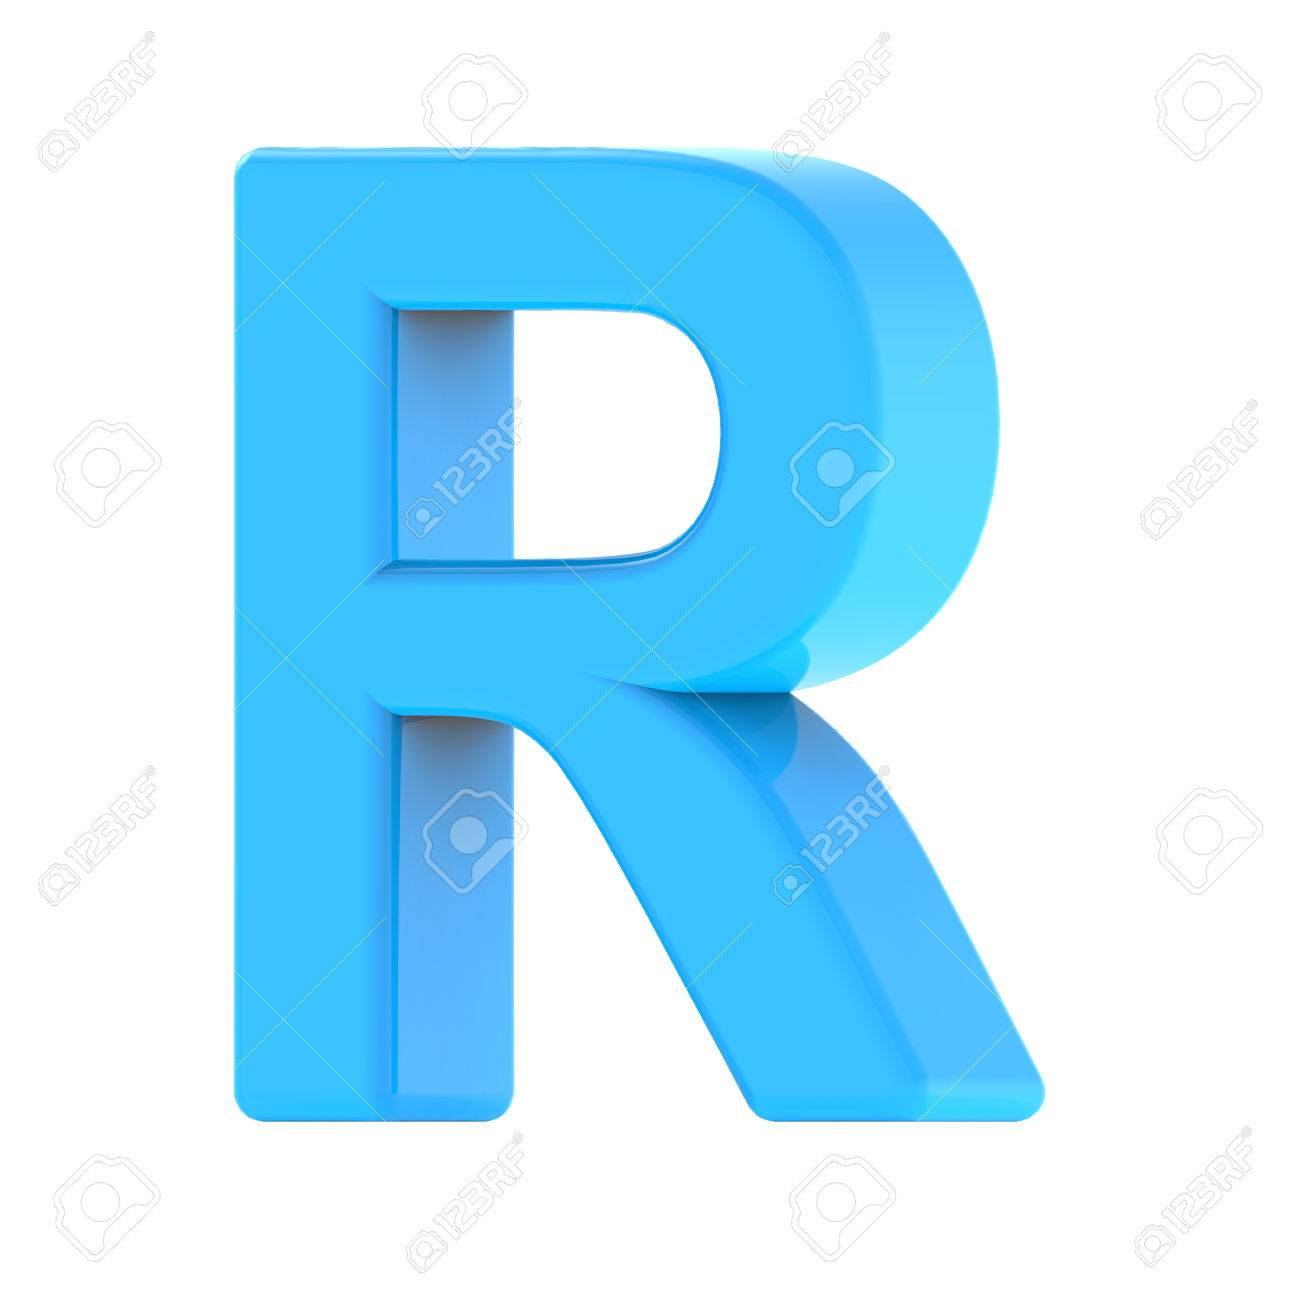 3d right leaning light blue letter r 3d rendering graphic isolated 3d right leaning light blue letter r 3d rendering graphic isolated white background stock photo thecheapjerseys Image collections